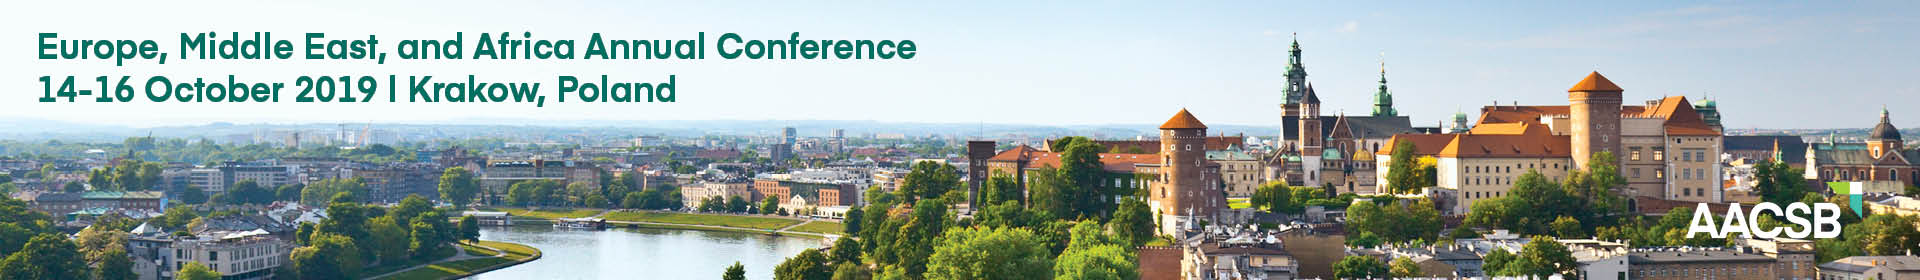 2019 Europe, Middle East, and Africa Annual Conference Event Banner